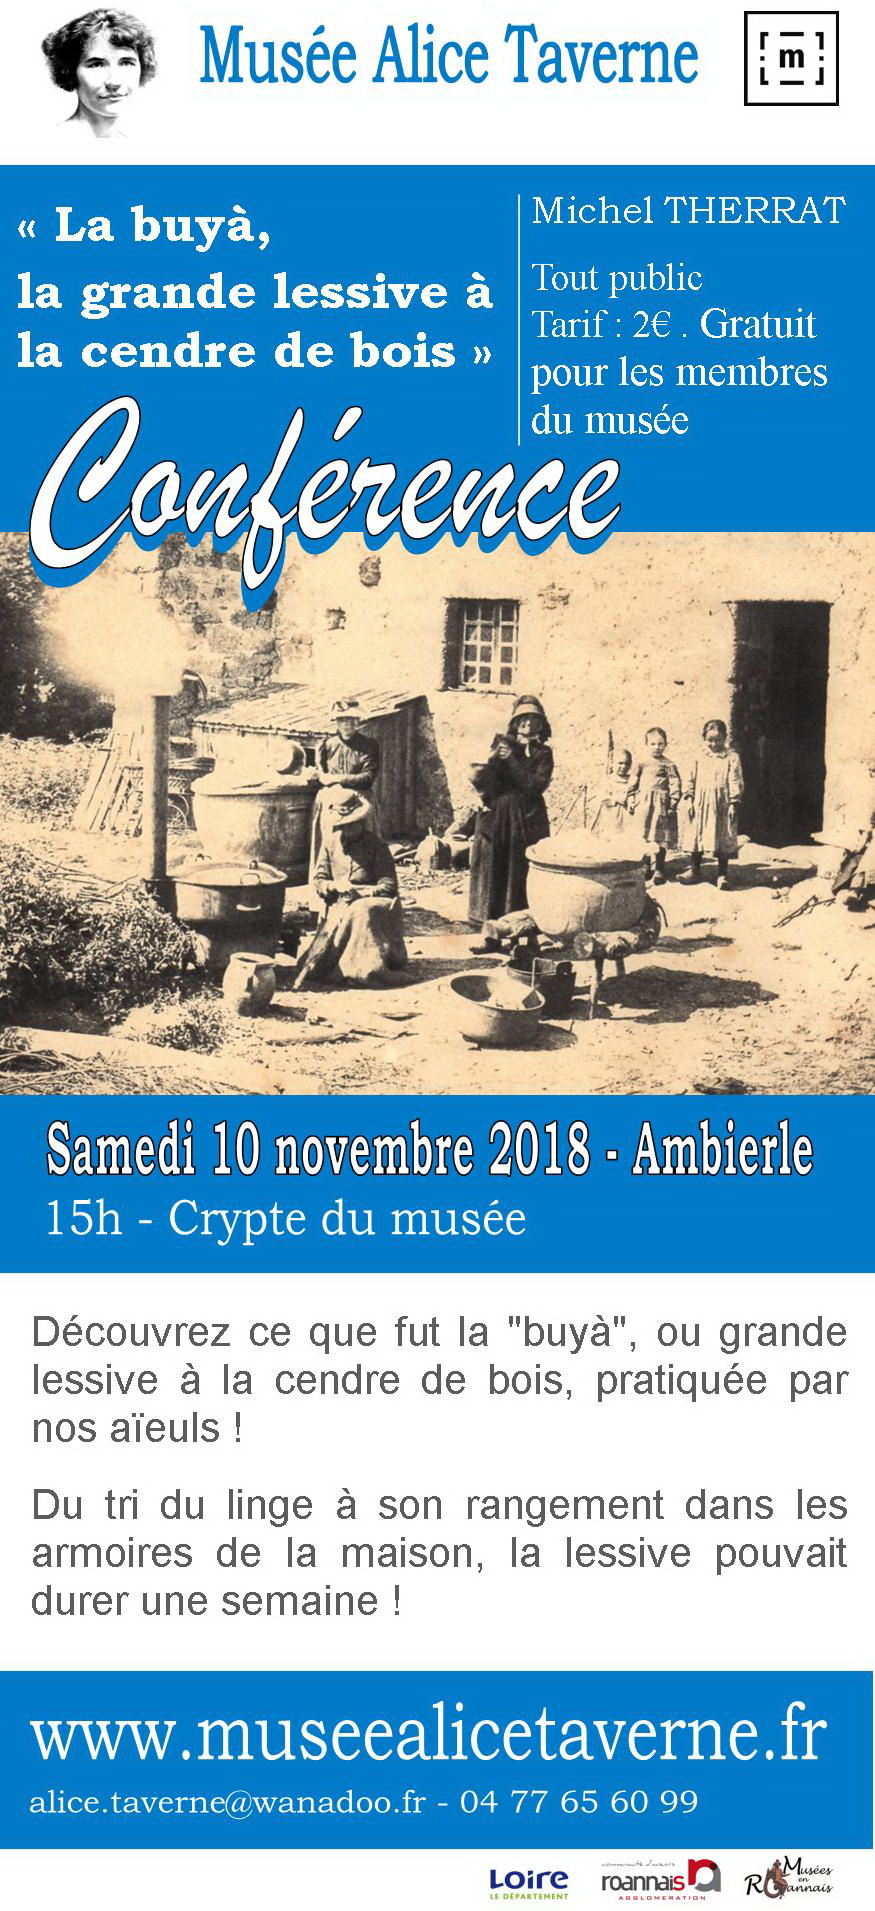 Newsletter conference la buya novembre 2018